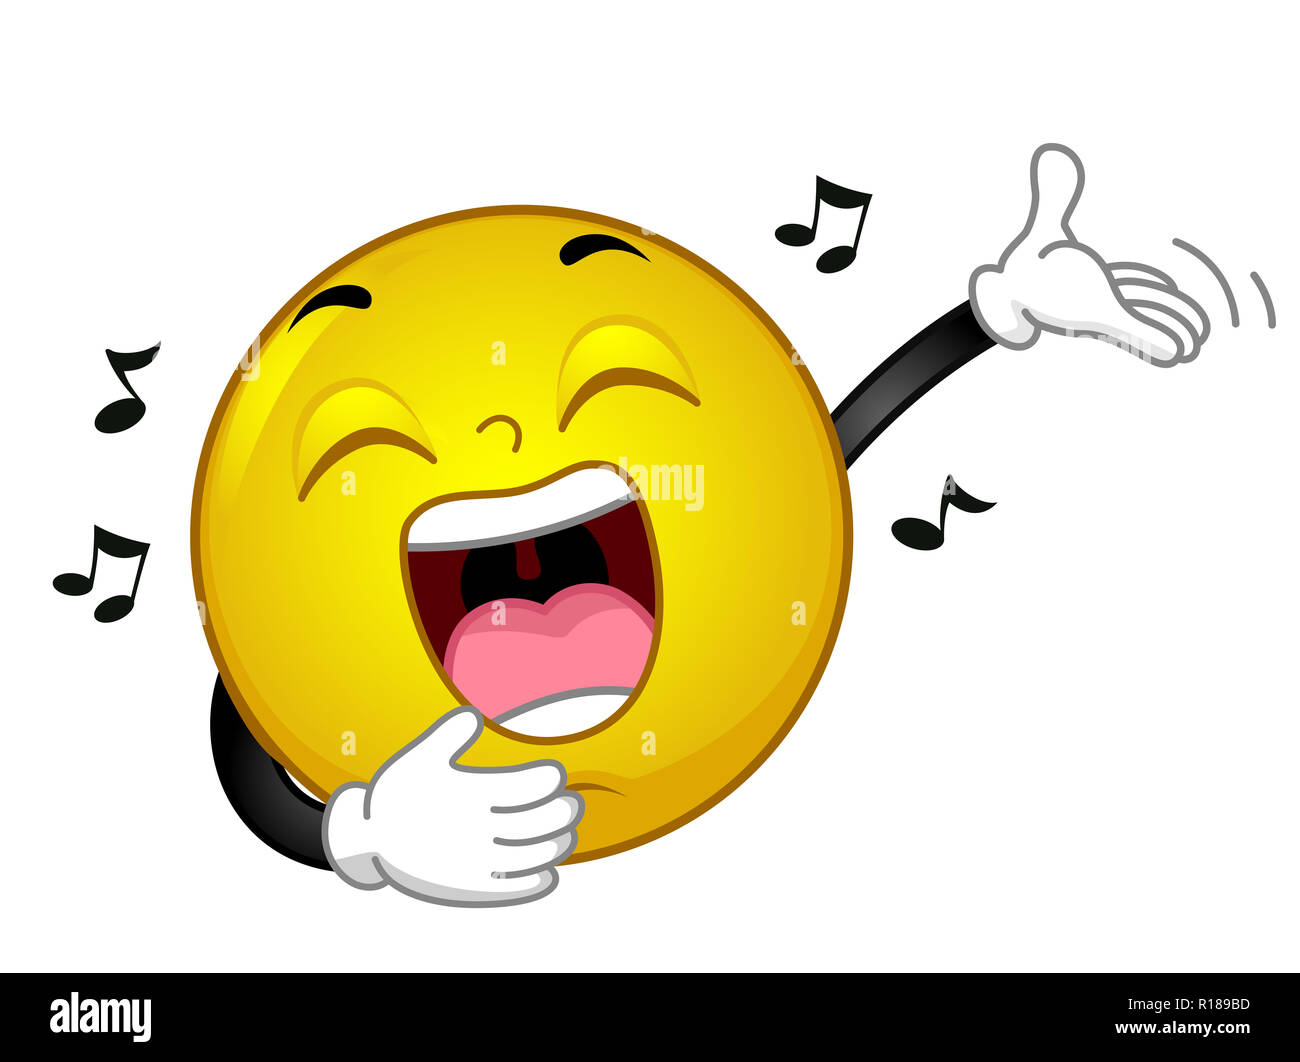 Illustration of a Smiley Mascot with Hands Up Singing Loudly, with Music Notes Around - Stock Image